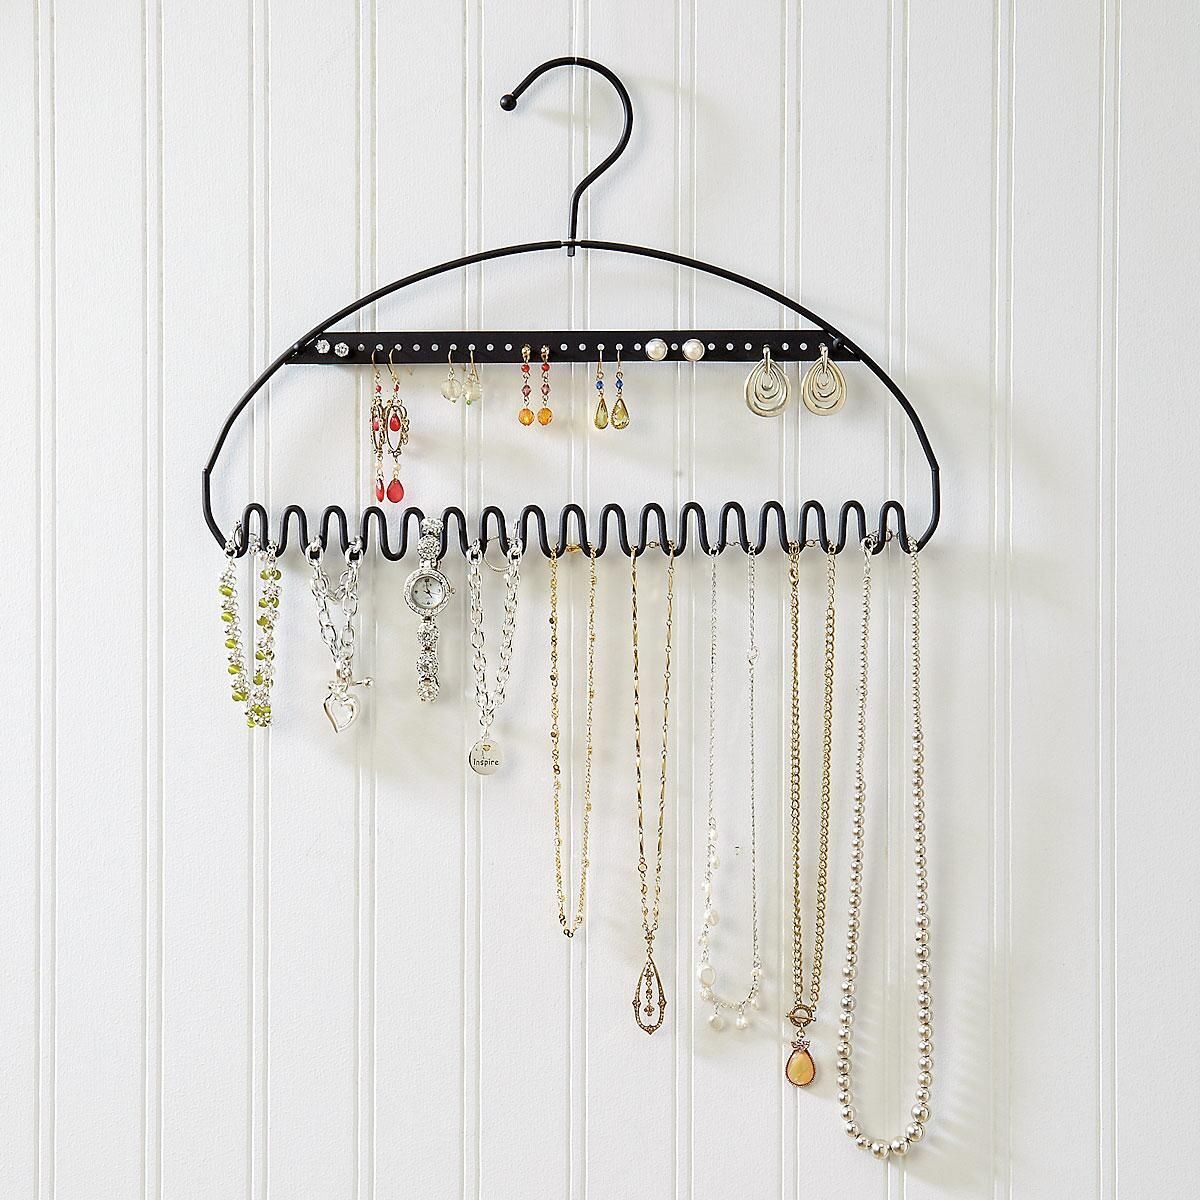 Hang It Up Jewelry Organizer